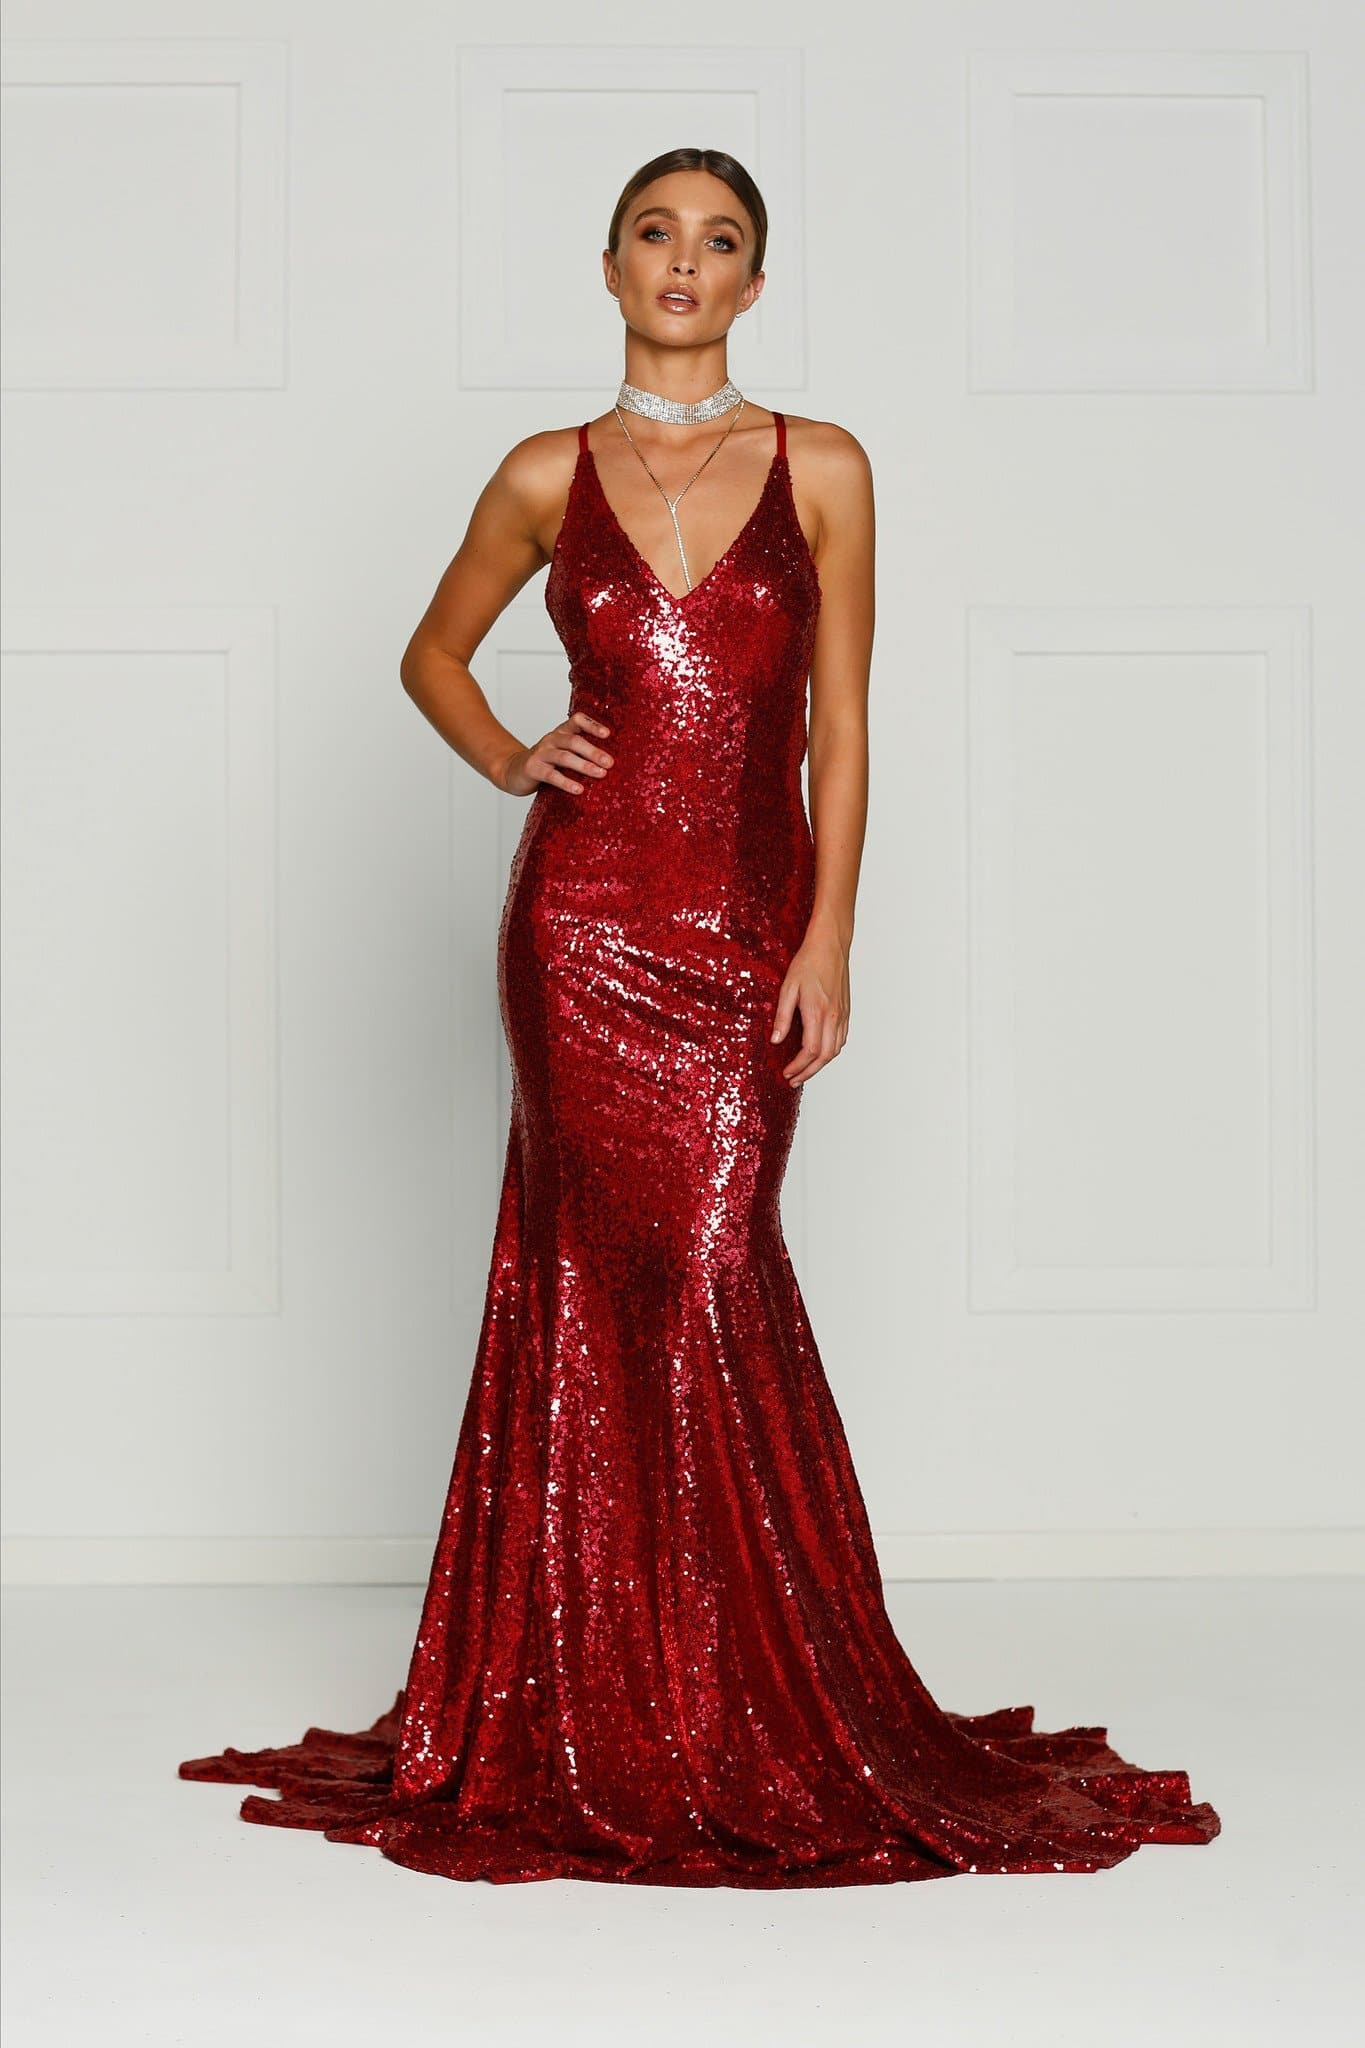 580362e7 A&N Gigi- Deep Red Sequin Dress with V Neck and Criss Cross Back ...